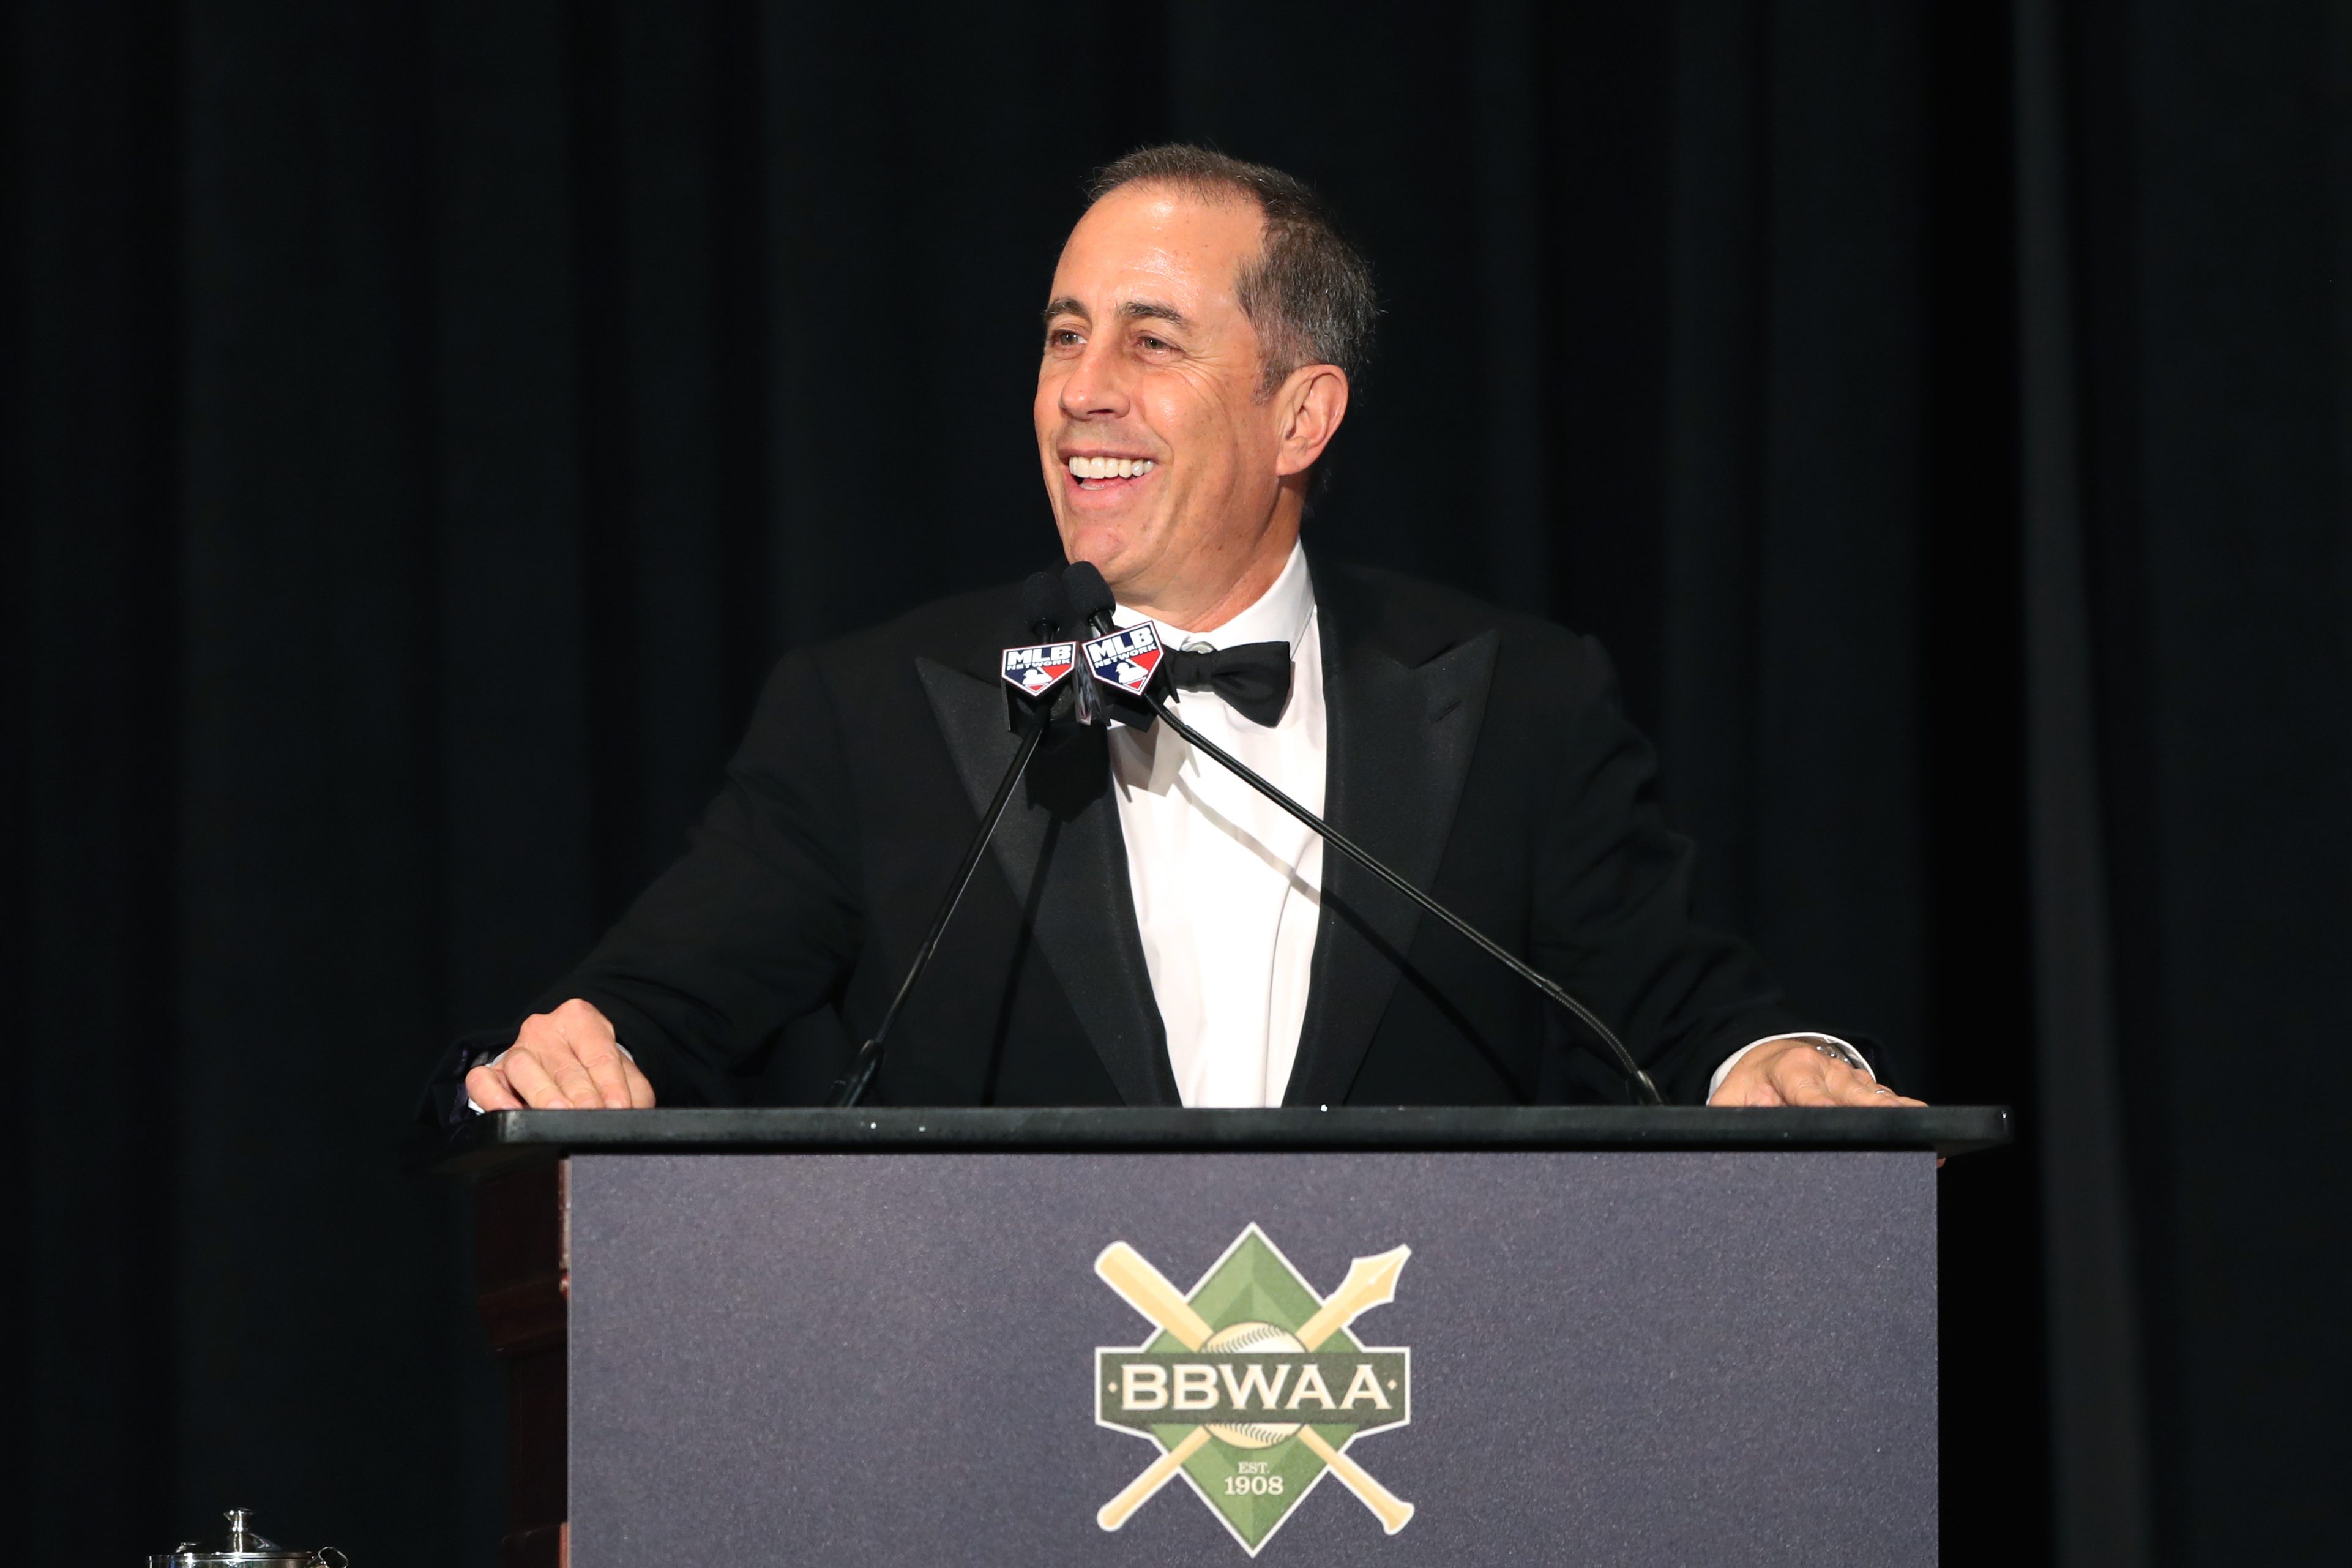 Jerry Seinfeld Will Release Comedy Book This Fall